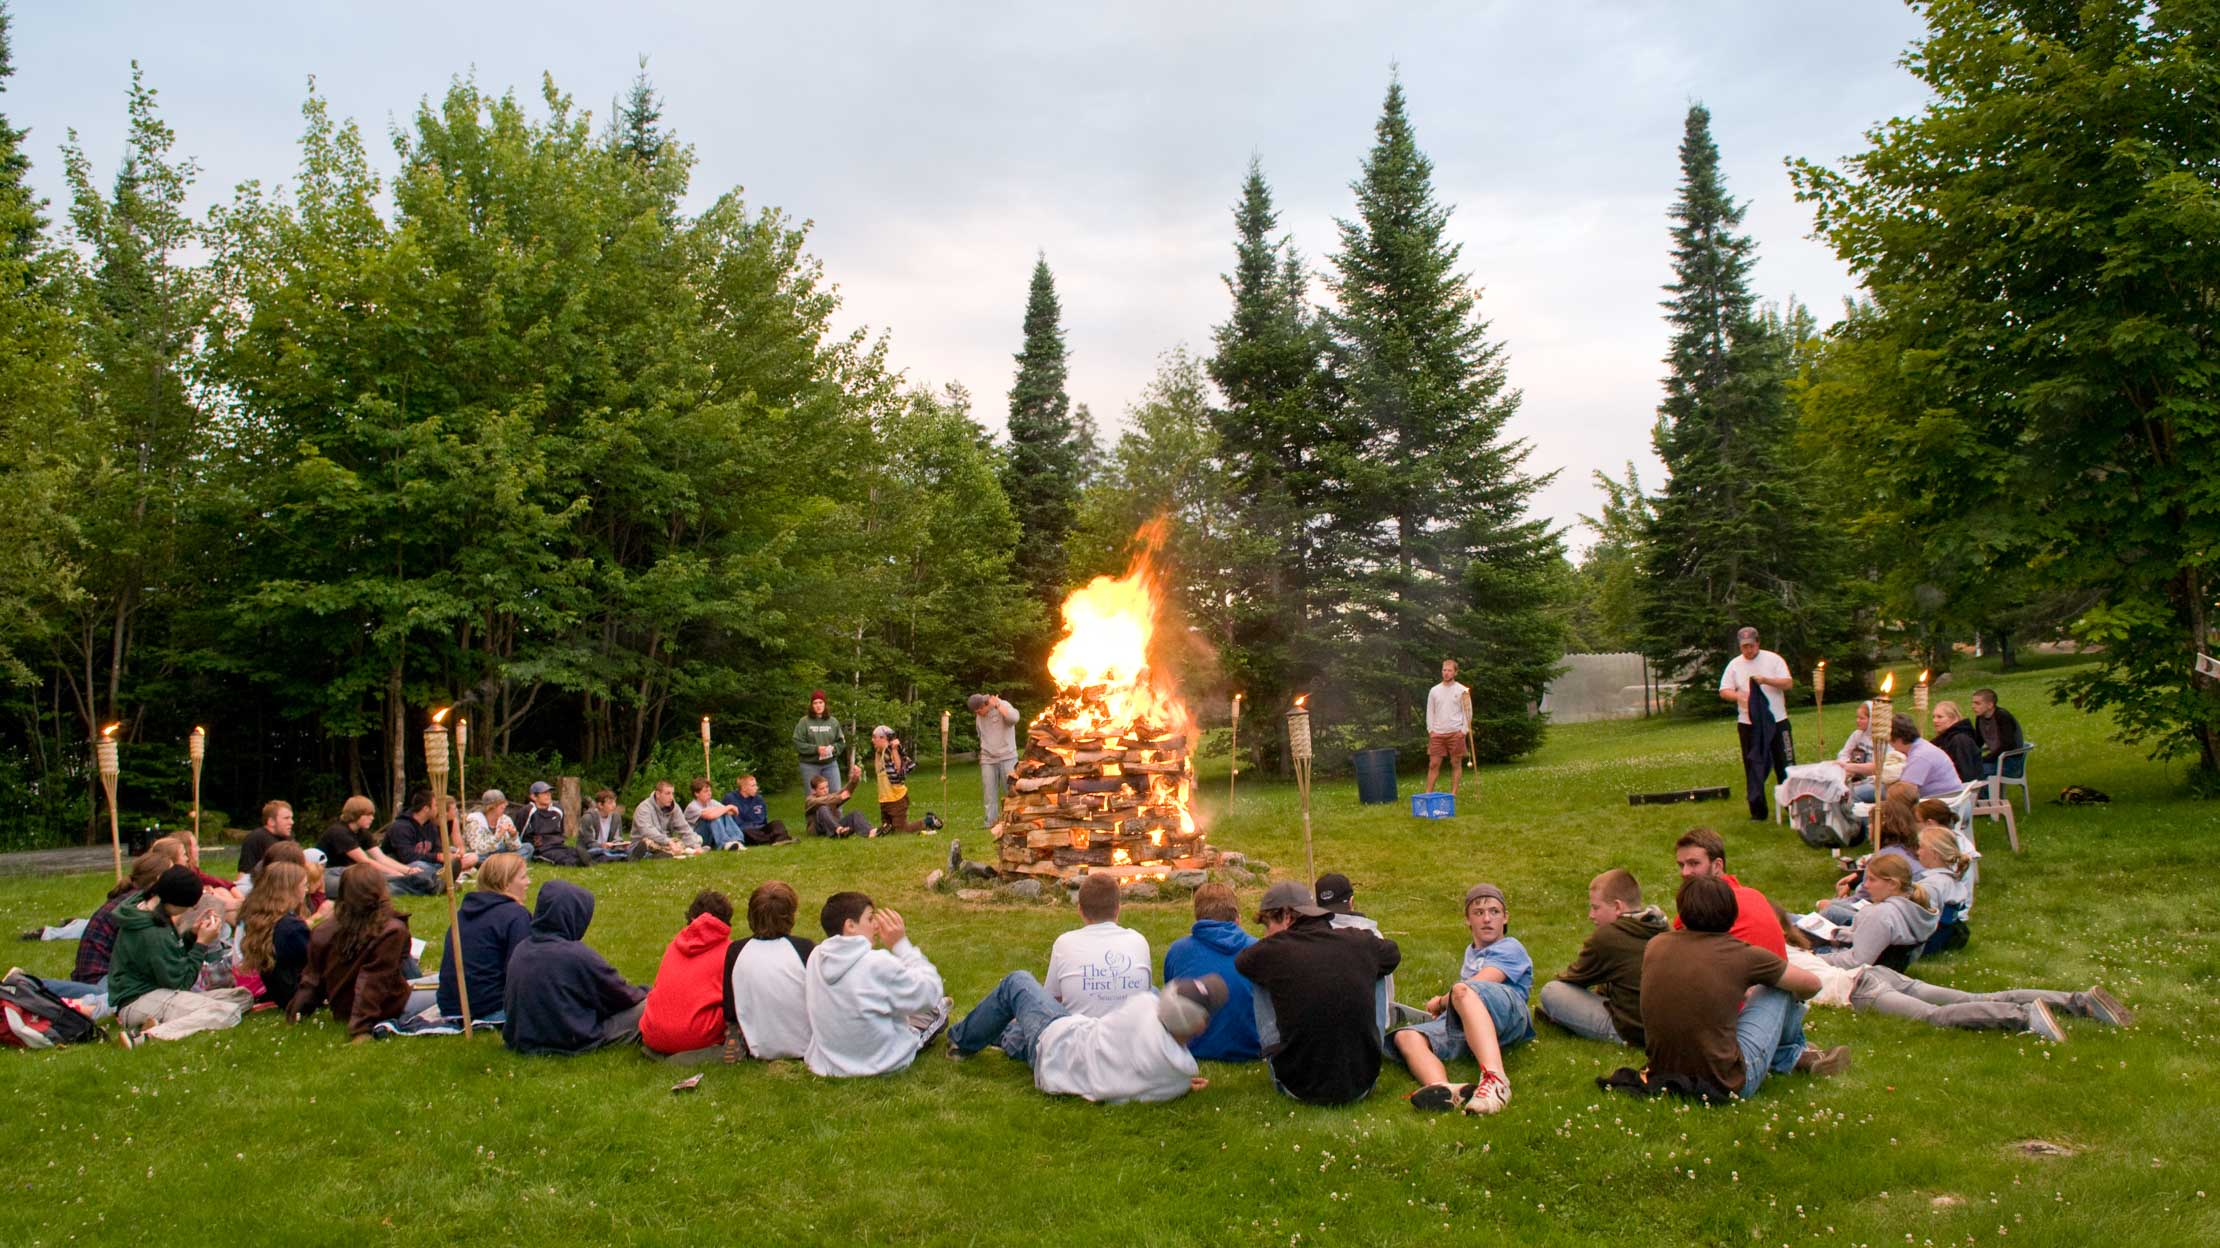 Campers and staff sitting around a campfire